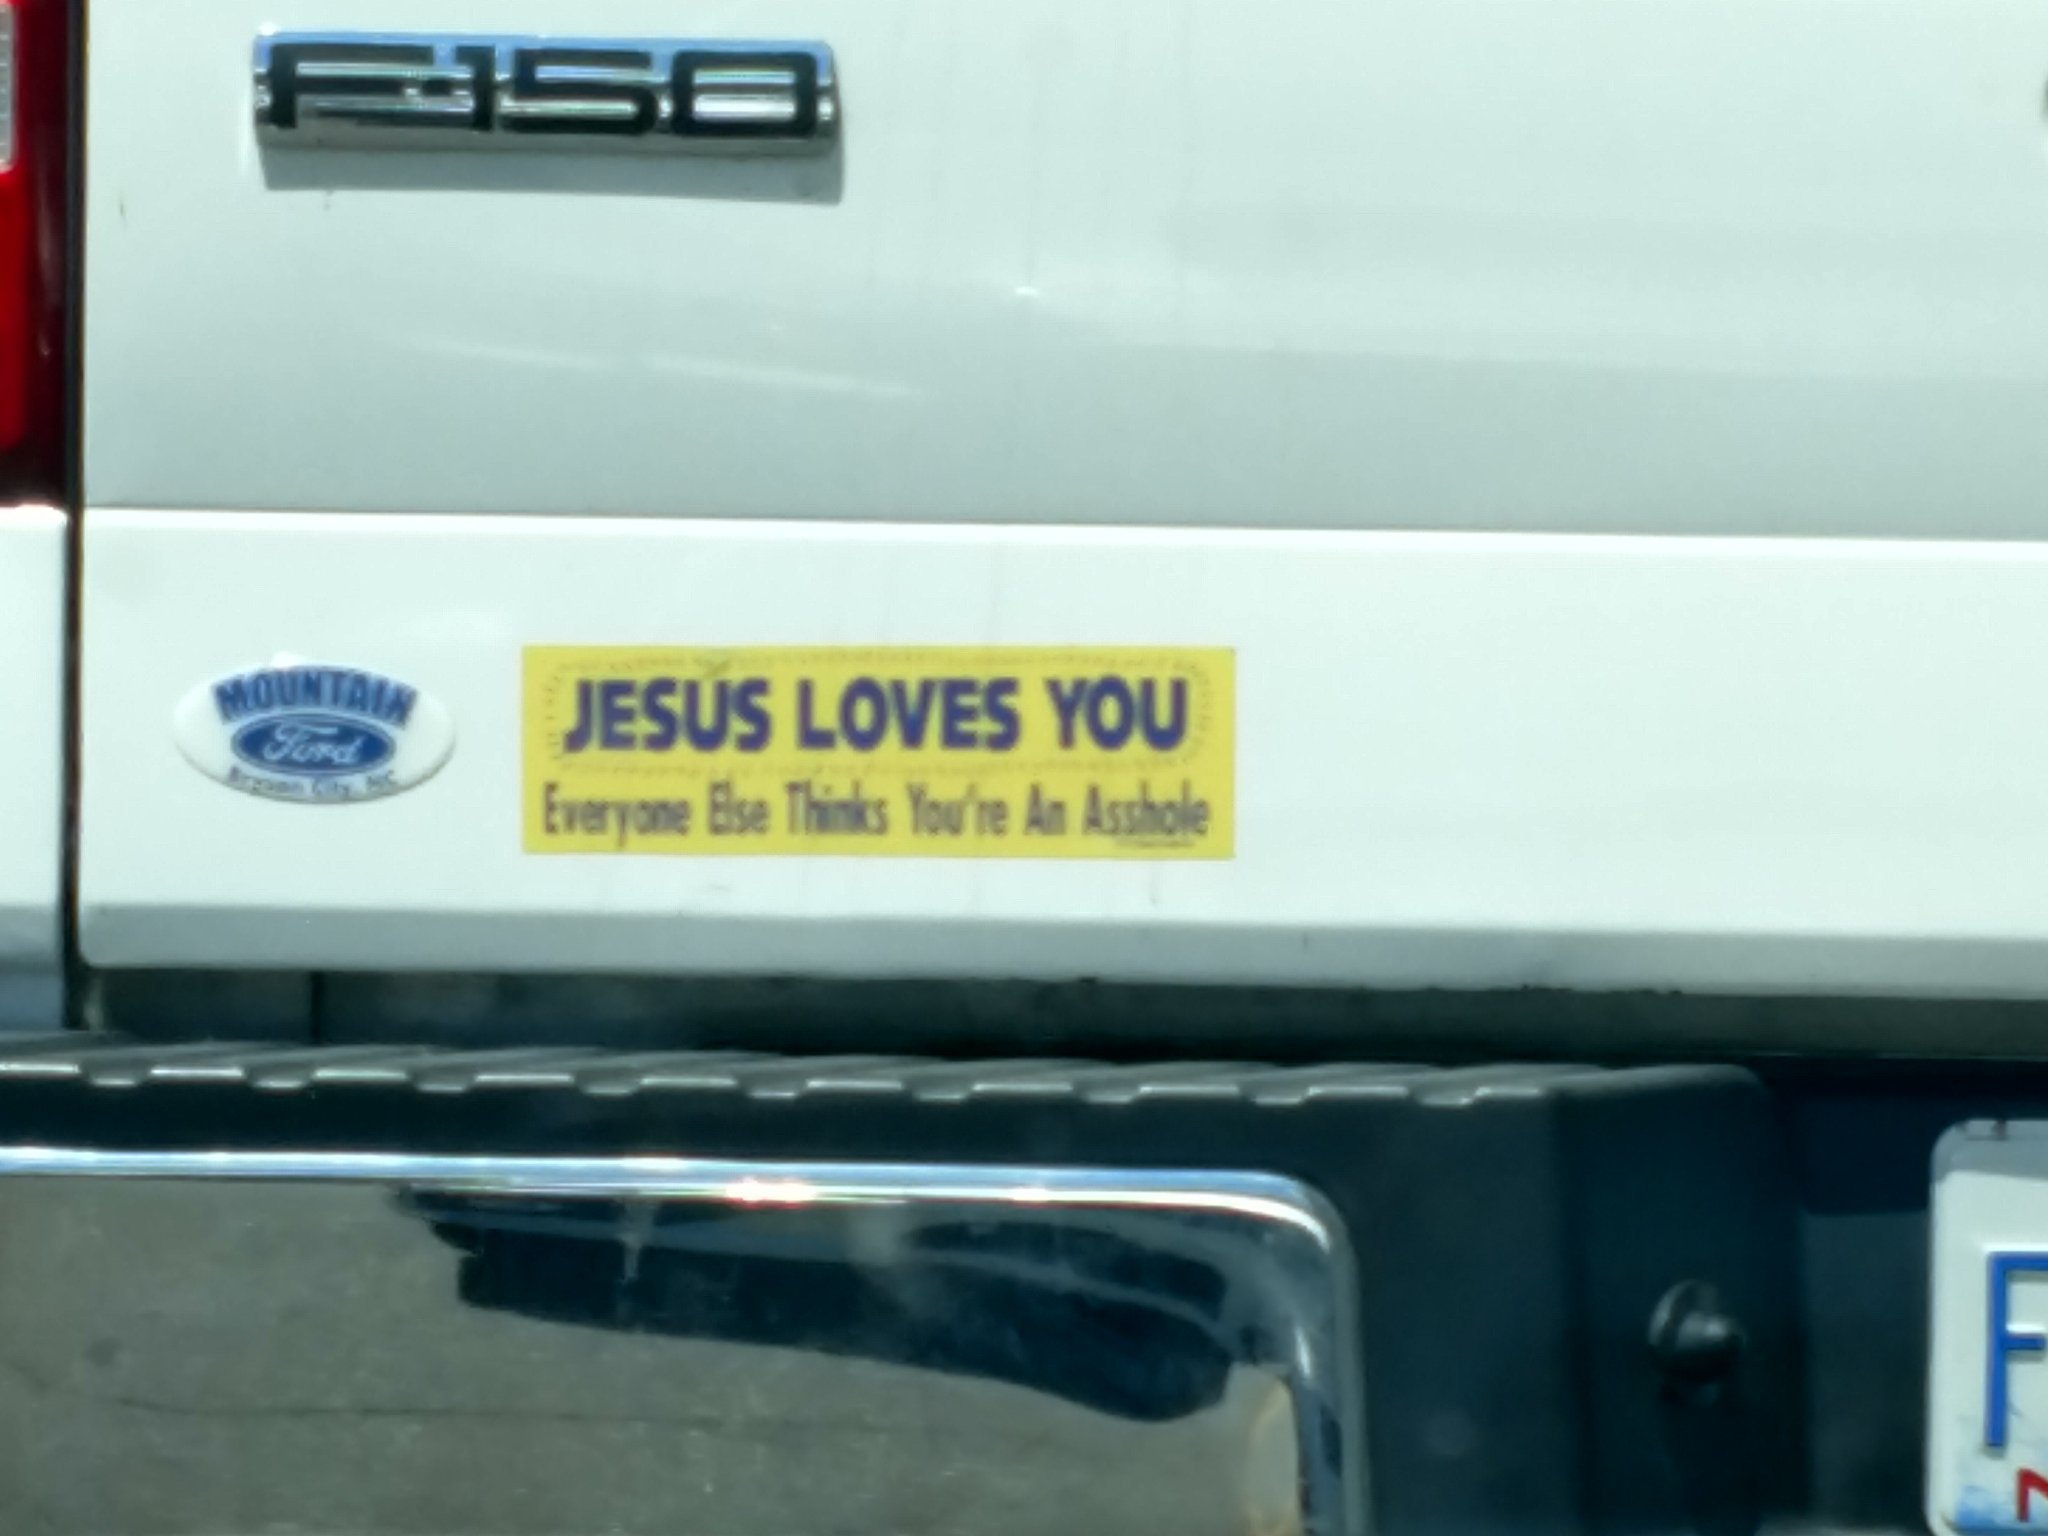 Jesus loves you - meme